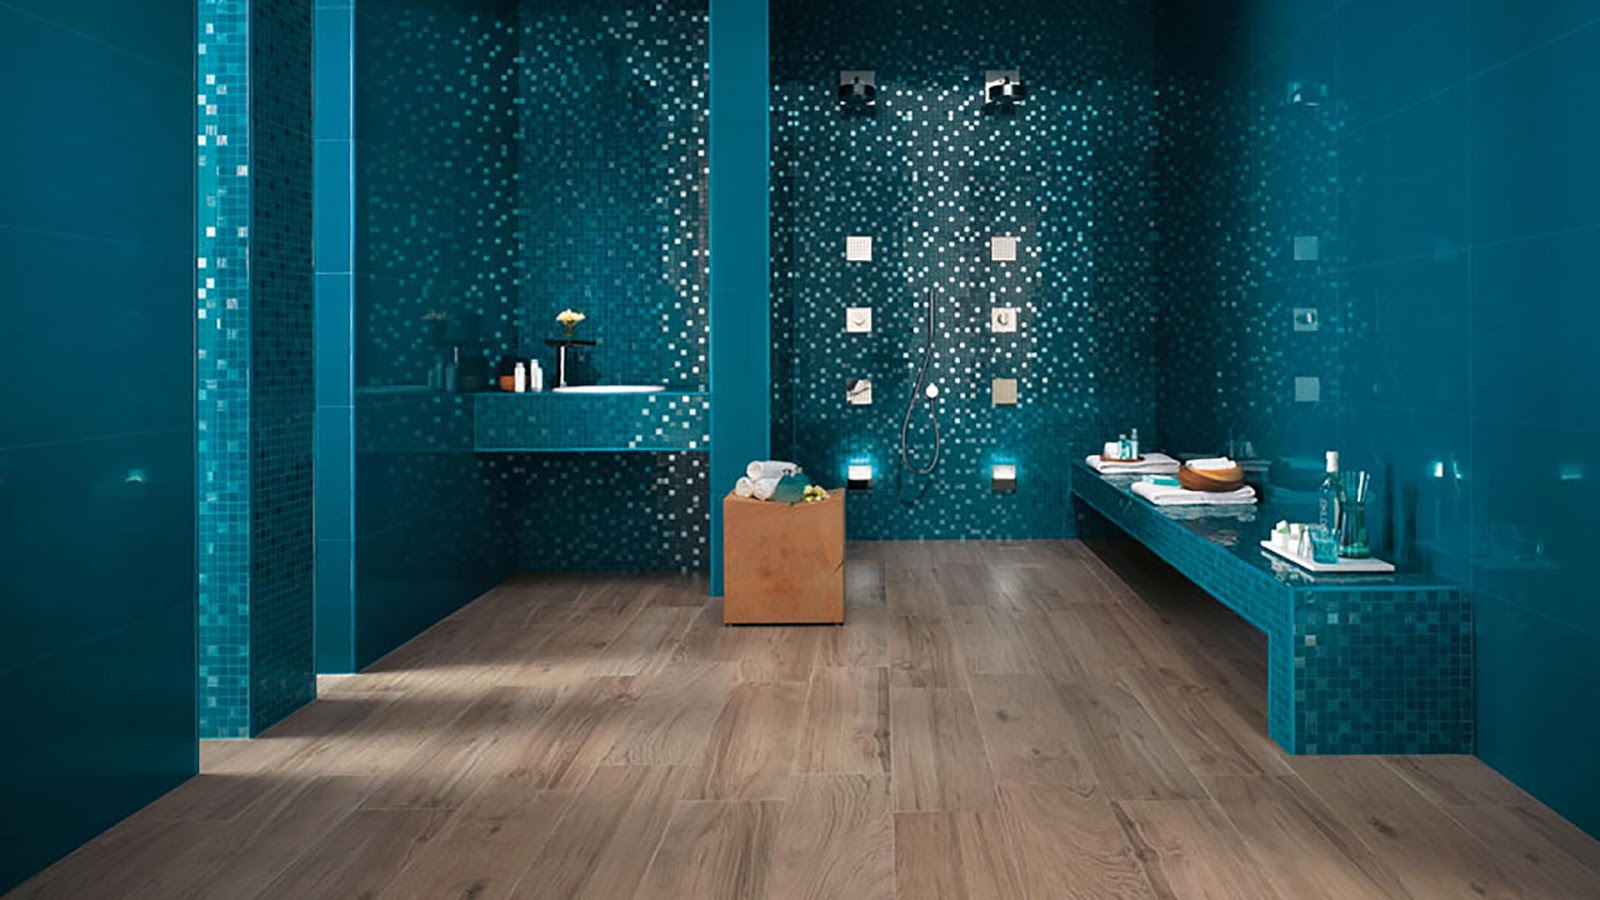 Bathroom decor and tiles with MAGNIFIQUE collection - Sophisticated ...